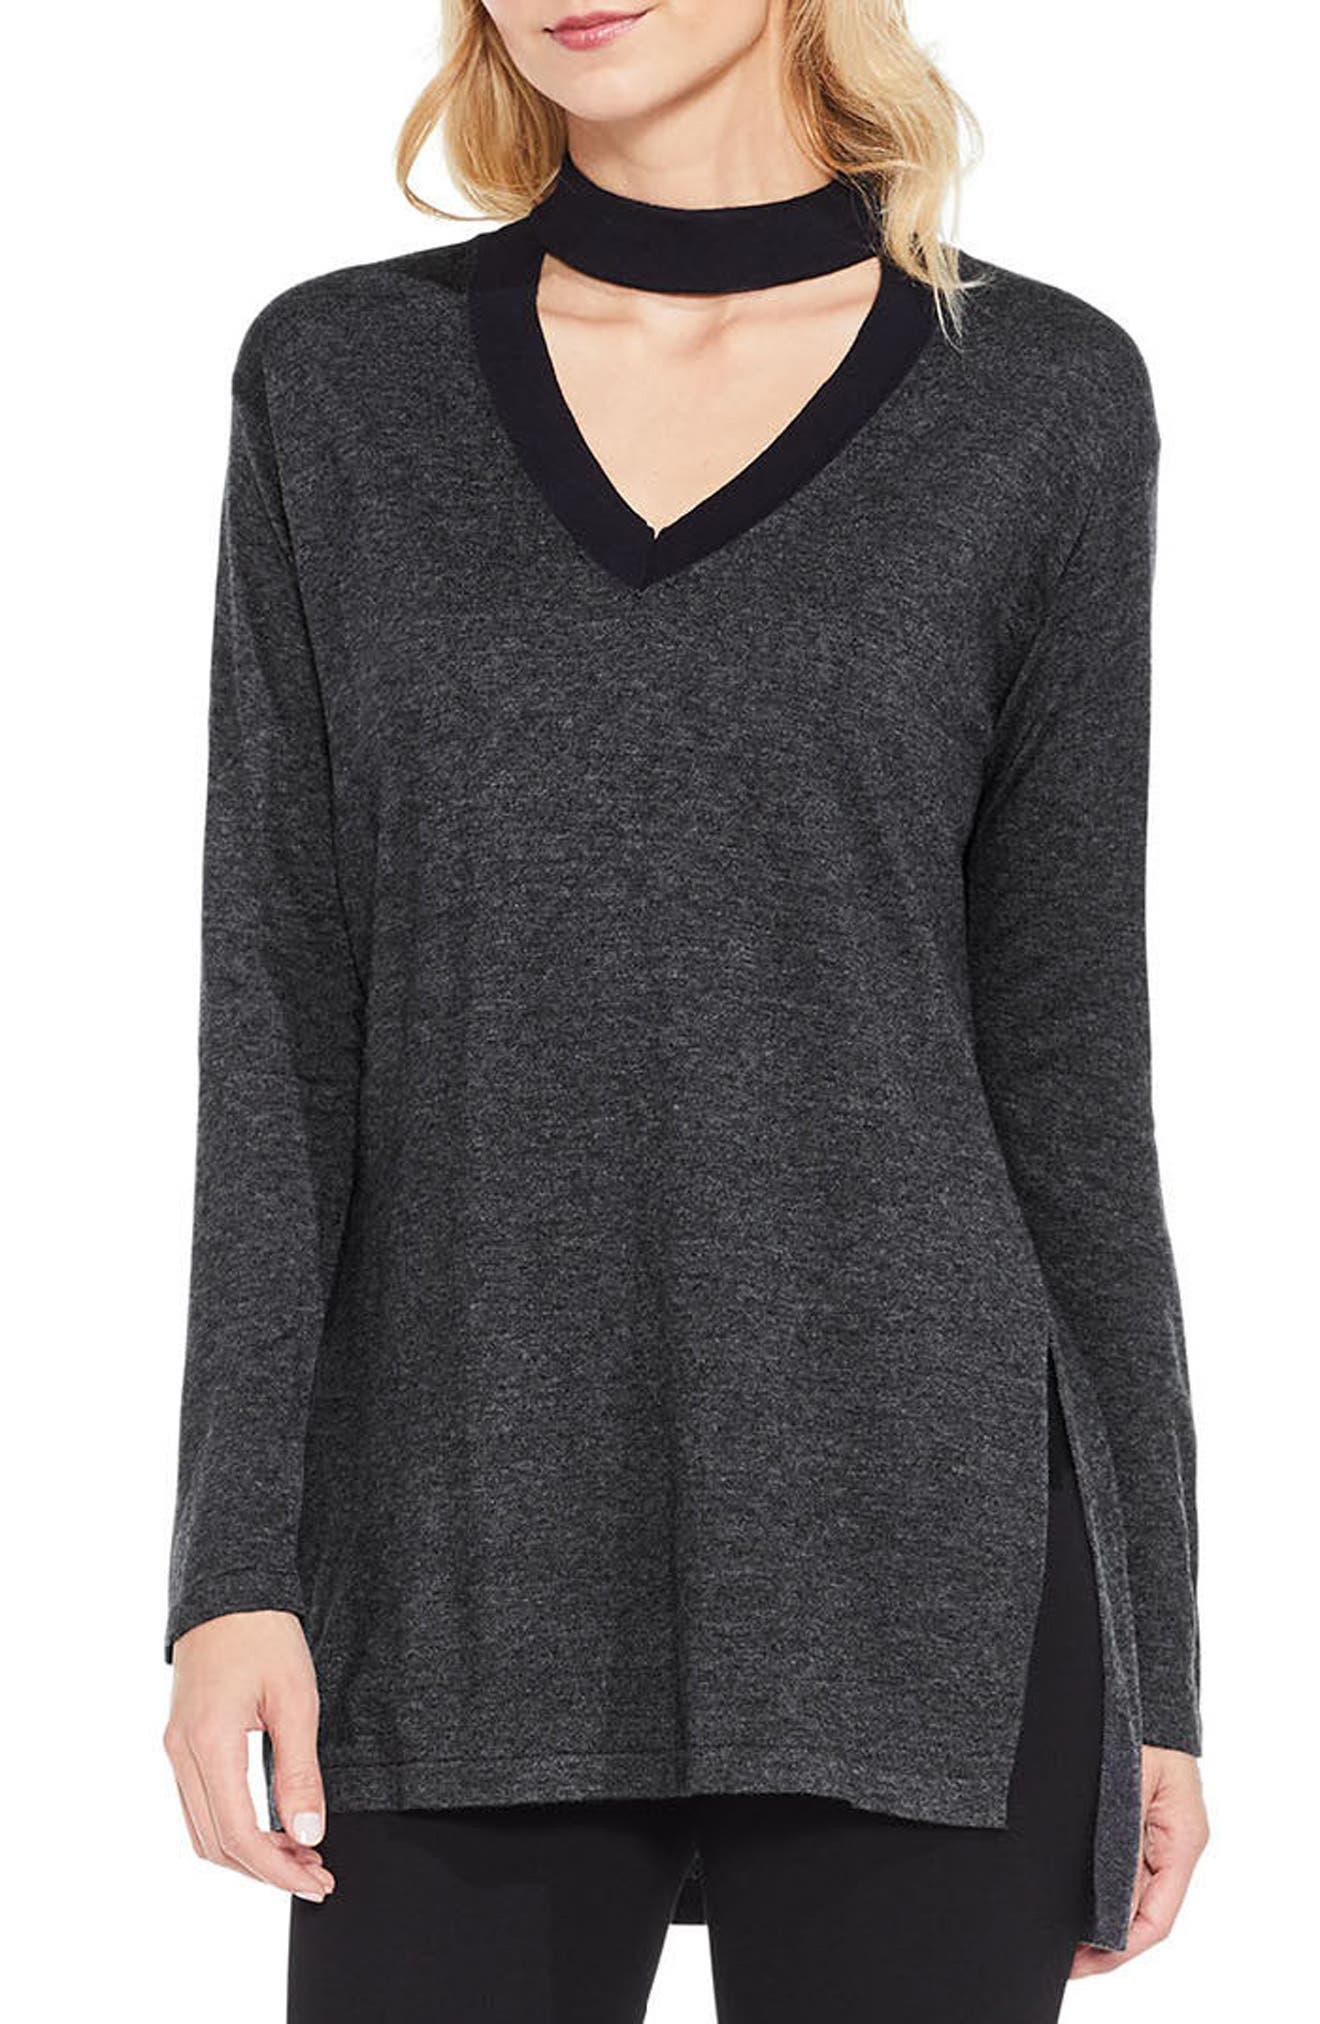 Main Image - Vince Camuto Choker V-Neck Sweater